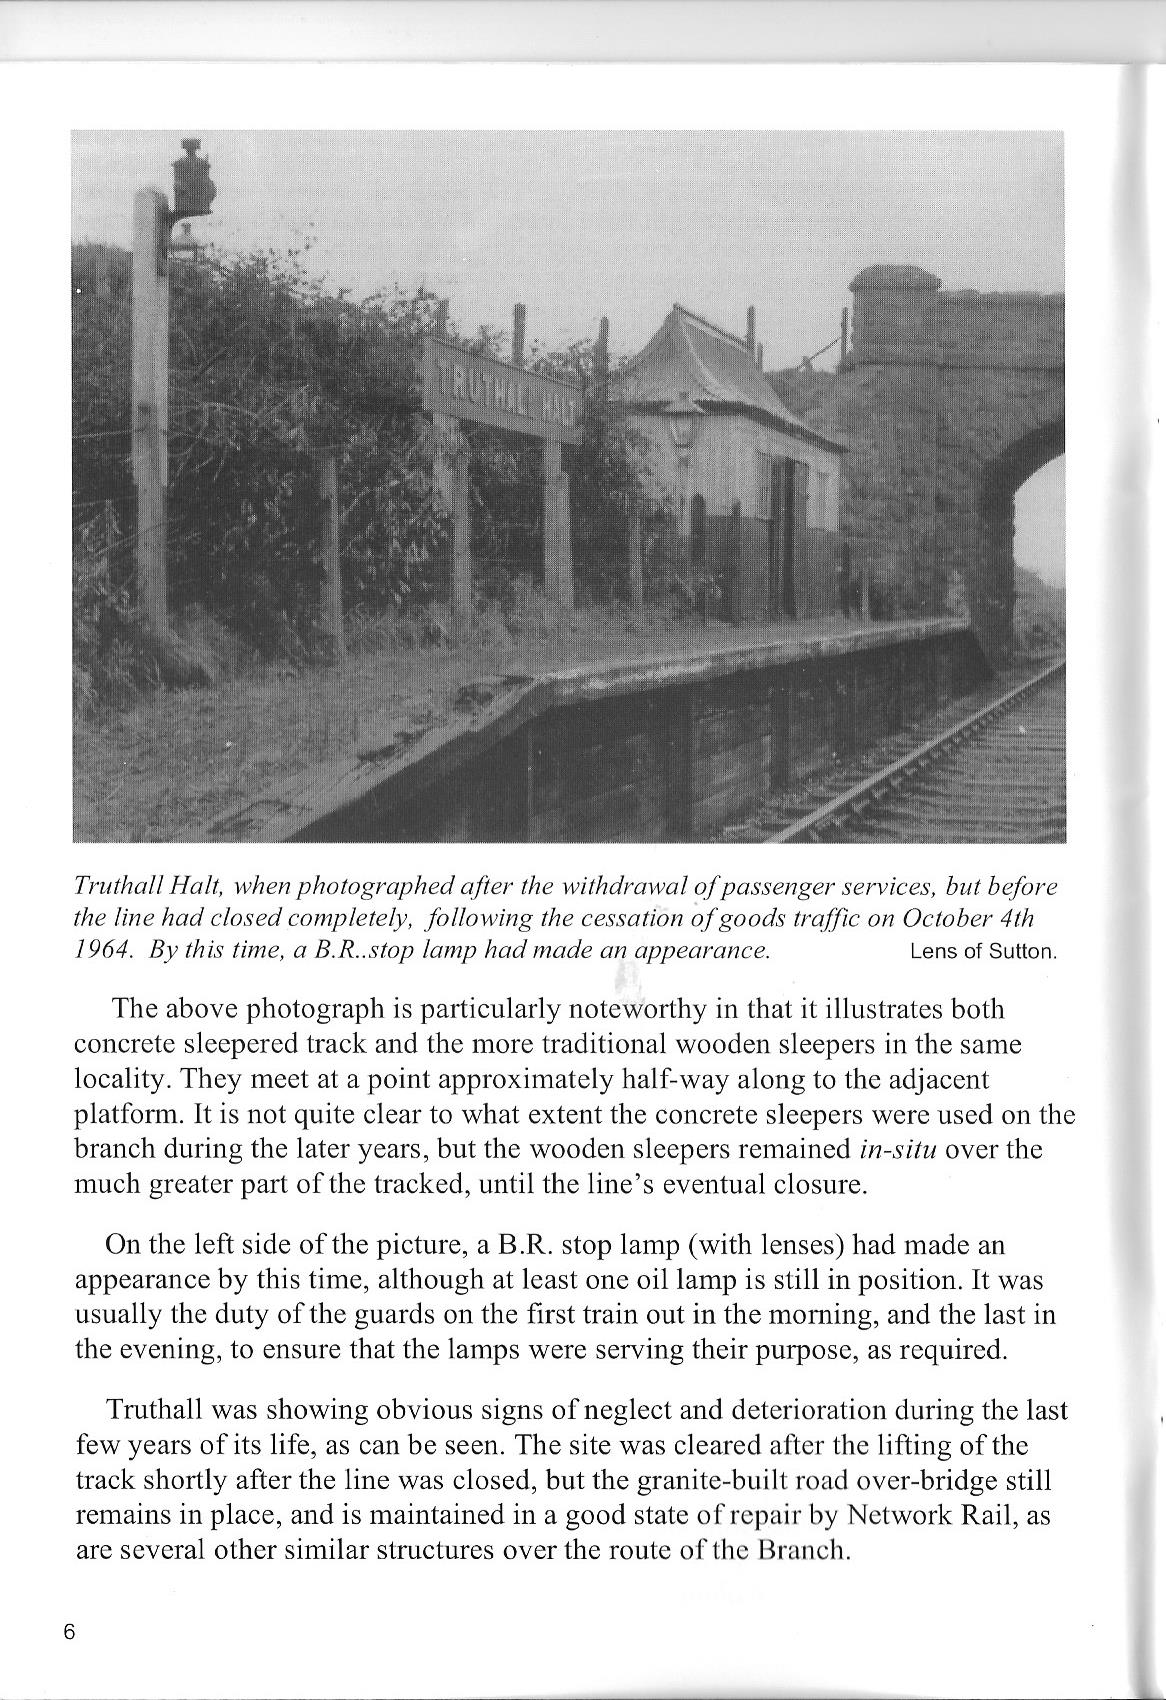 2007 Helston Railway Journal - Truthall 3.jpg